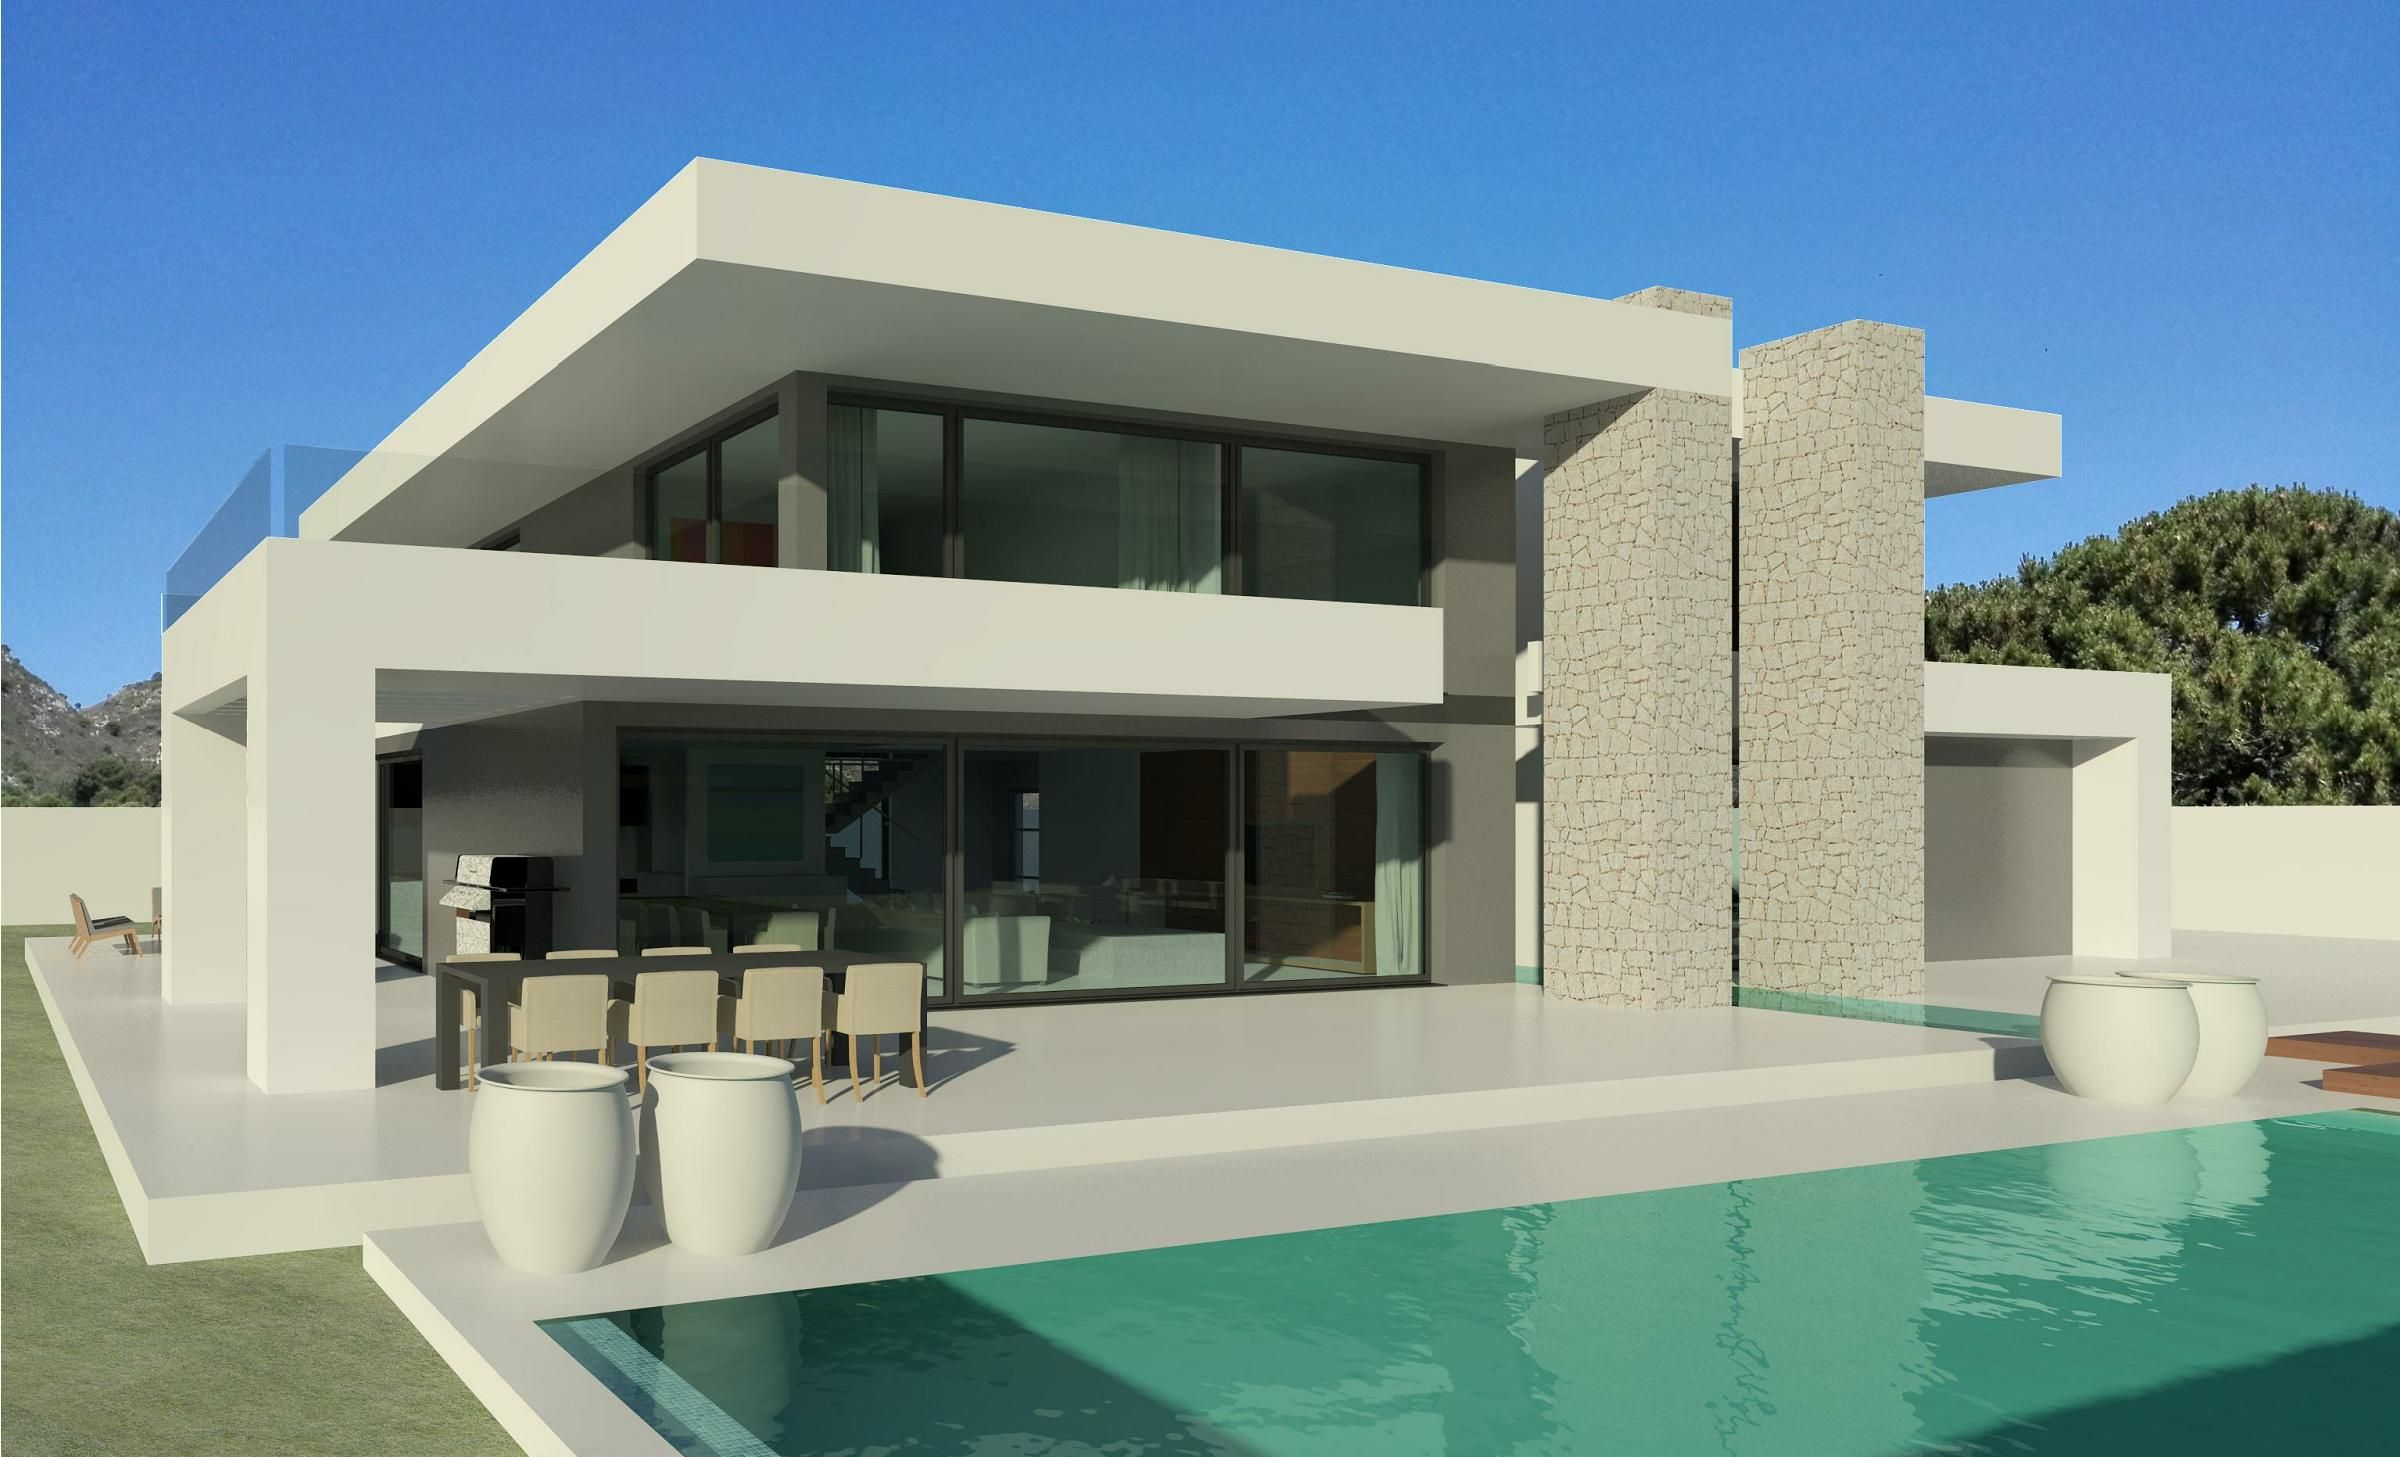 Modern villa plan dwg architecture is both the process and the product of planning designing and constructing buildings or any other structures